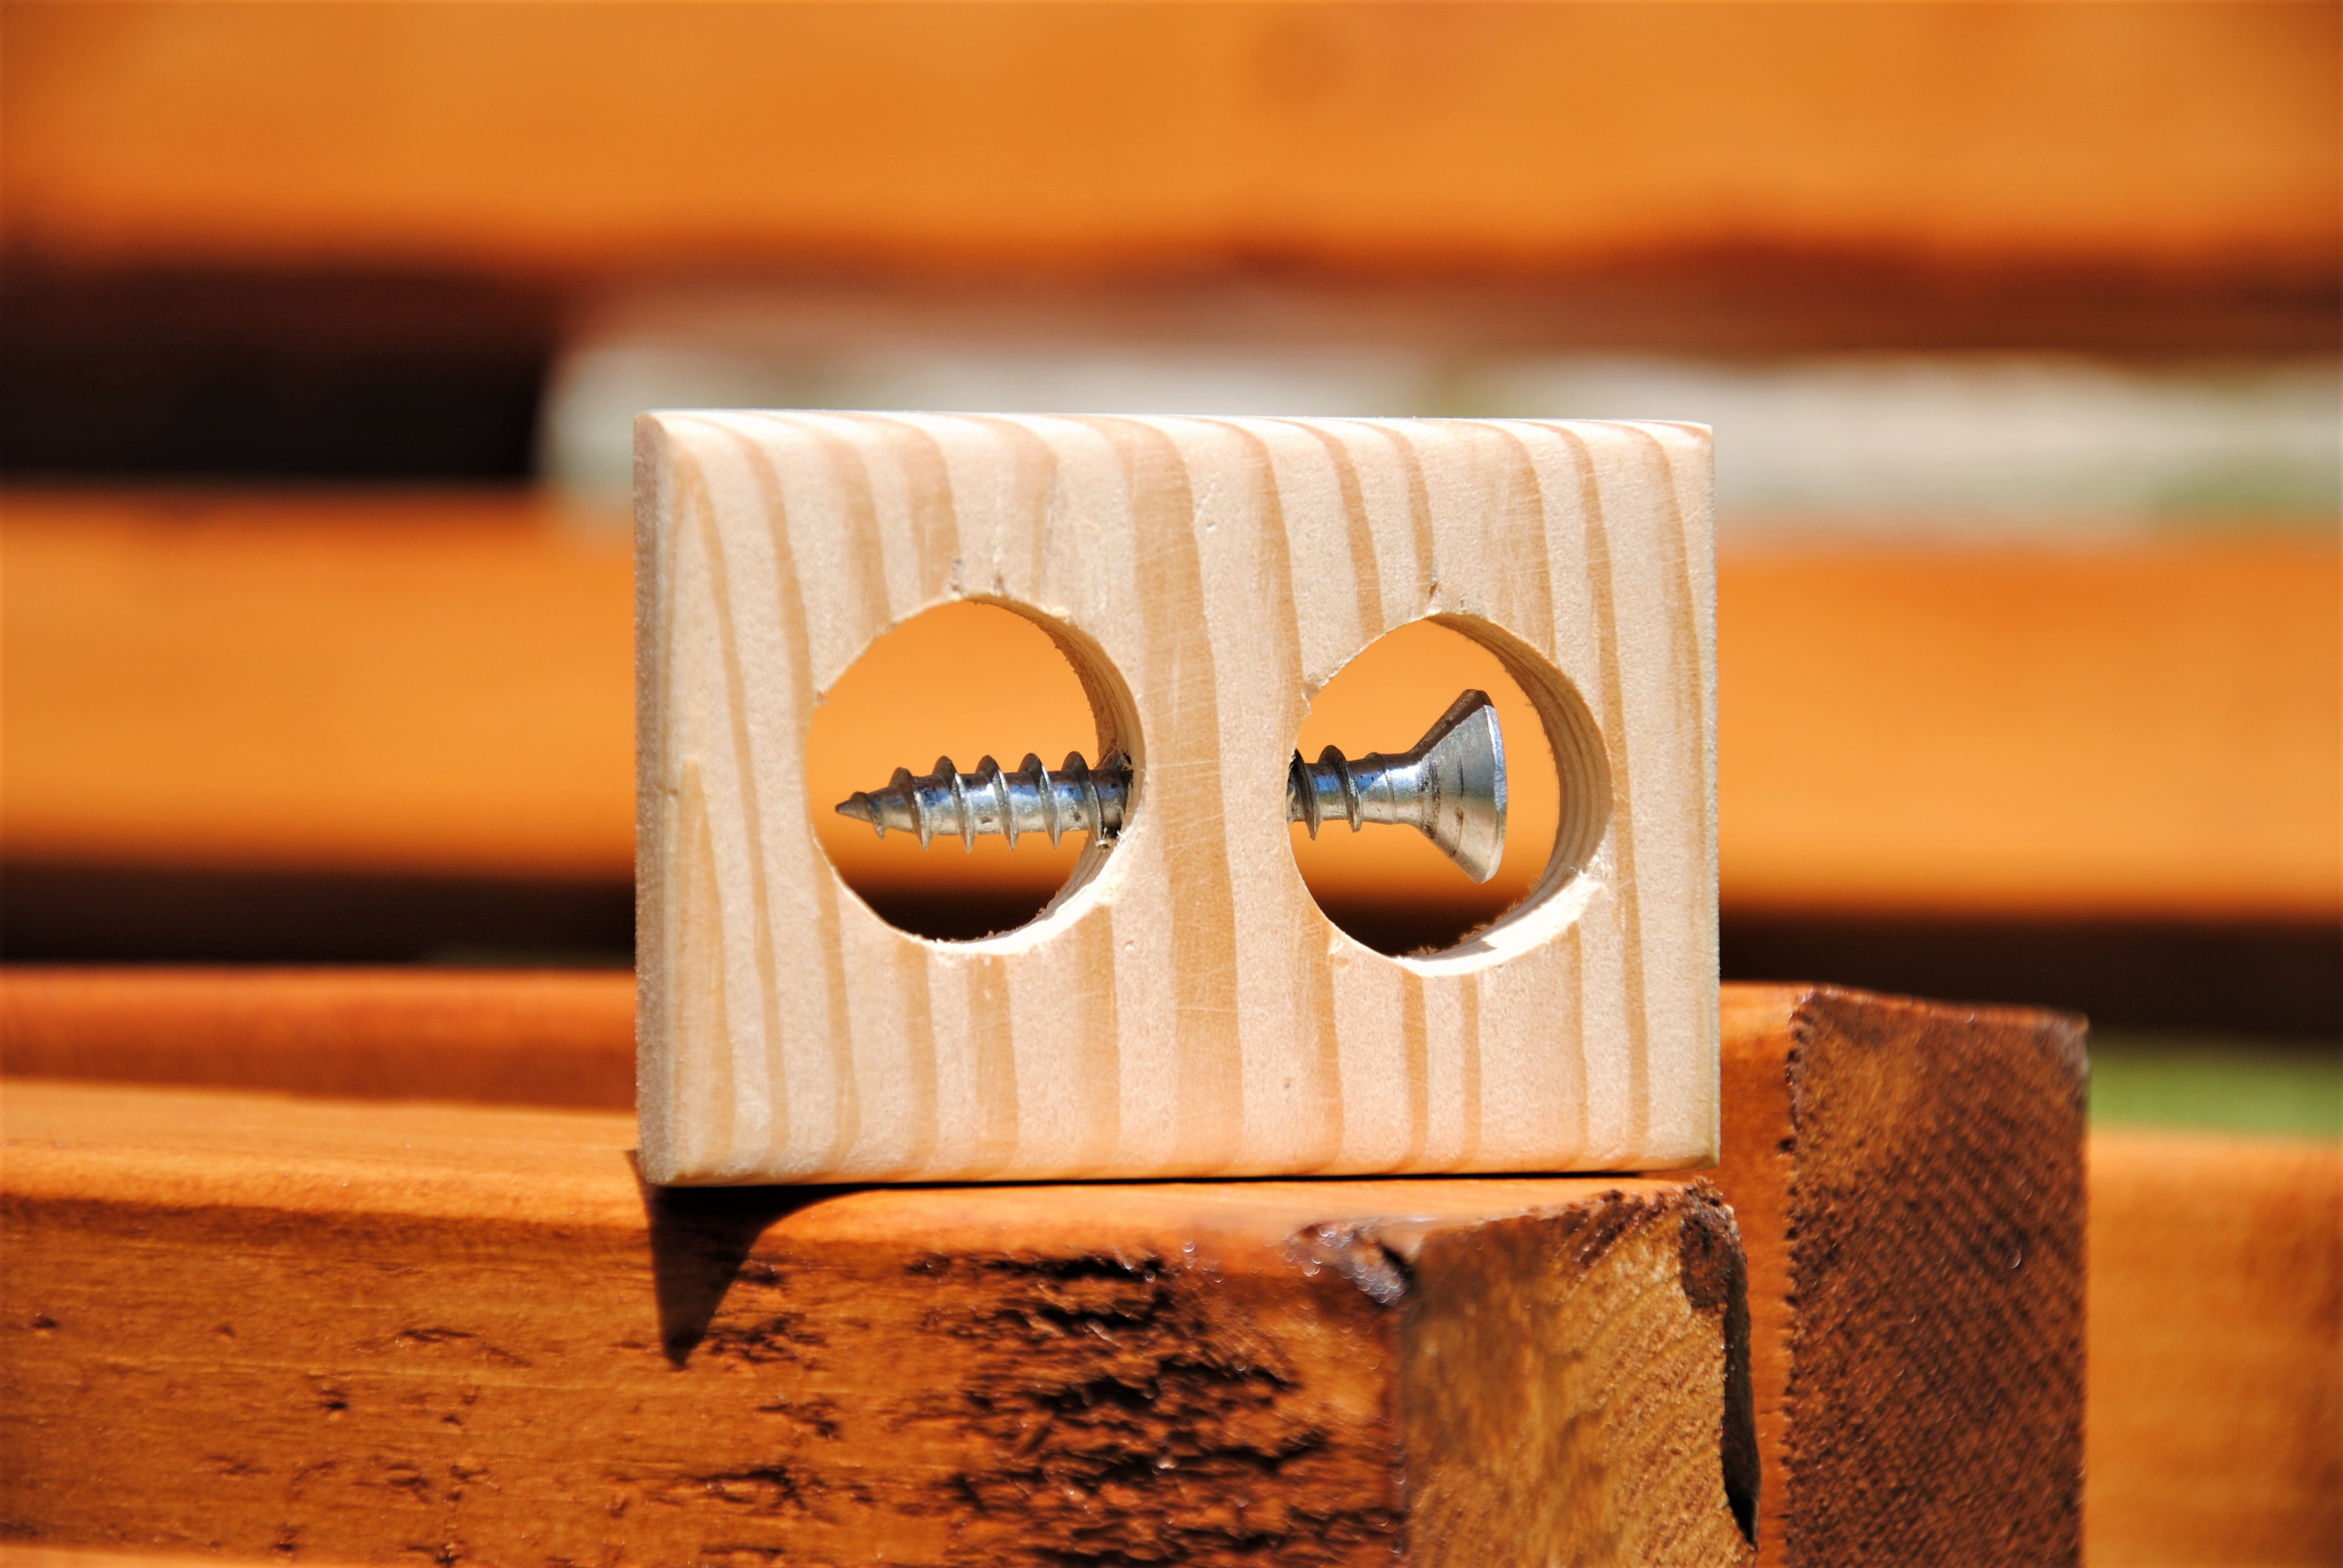 Picture of Impossible Screw in a Block of Wood